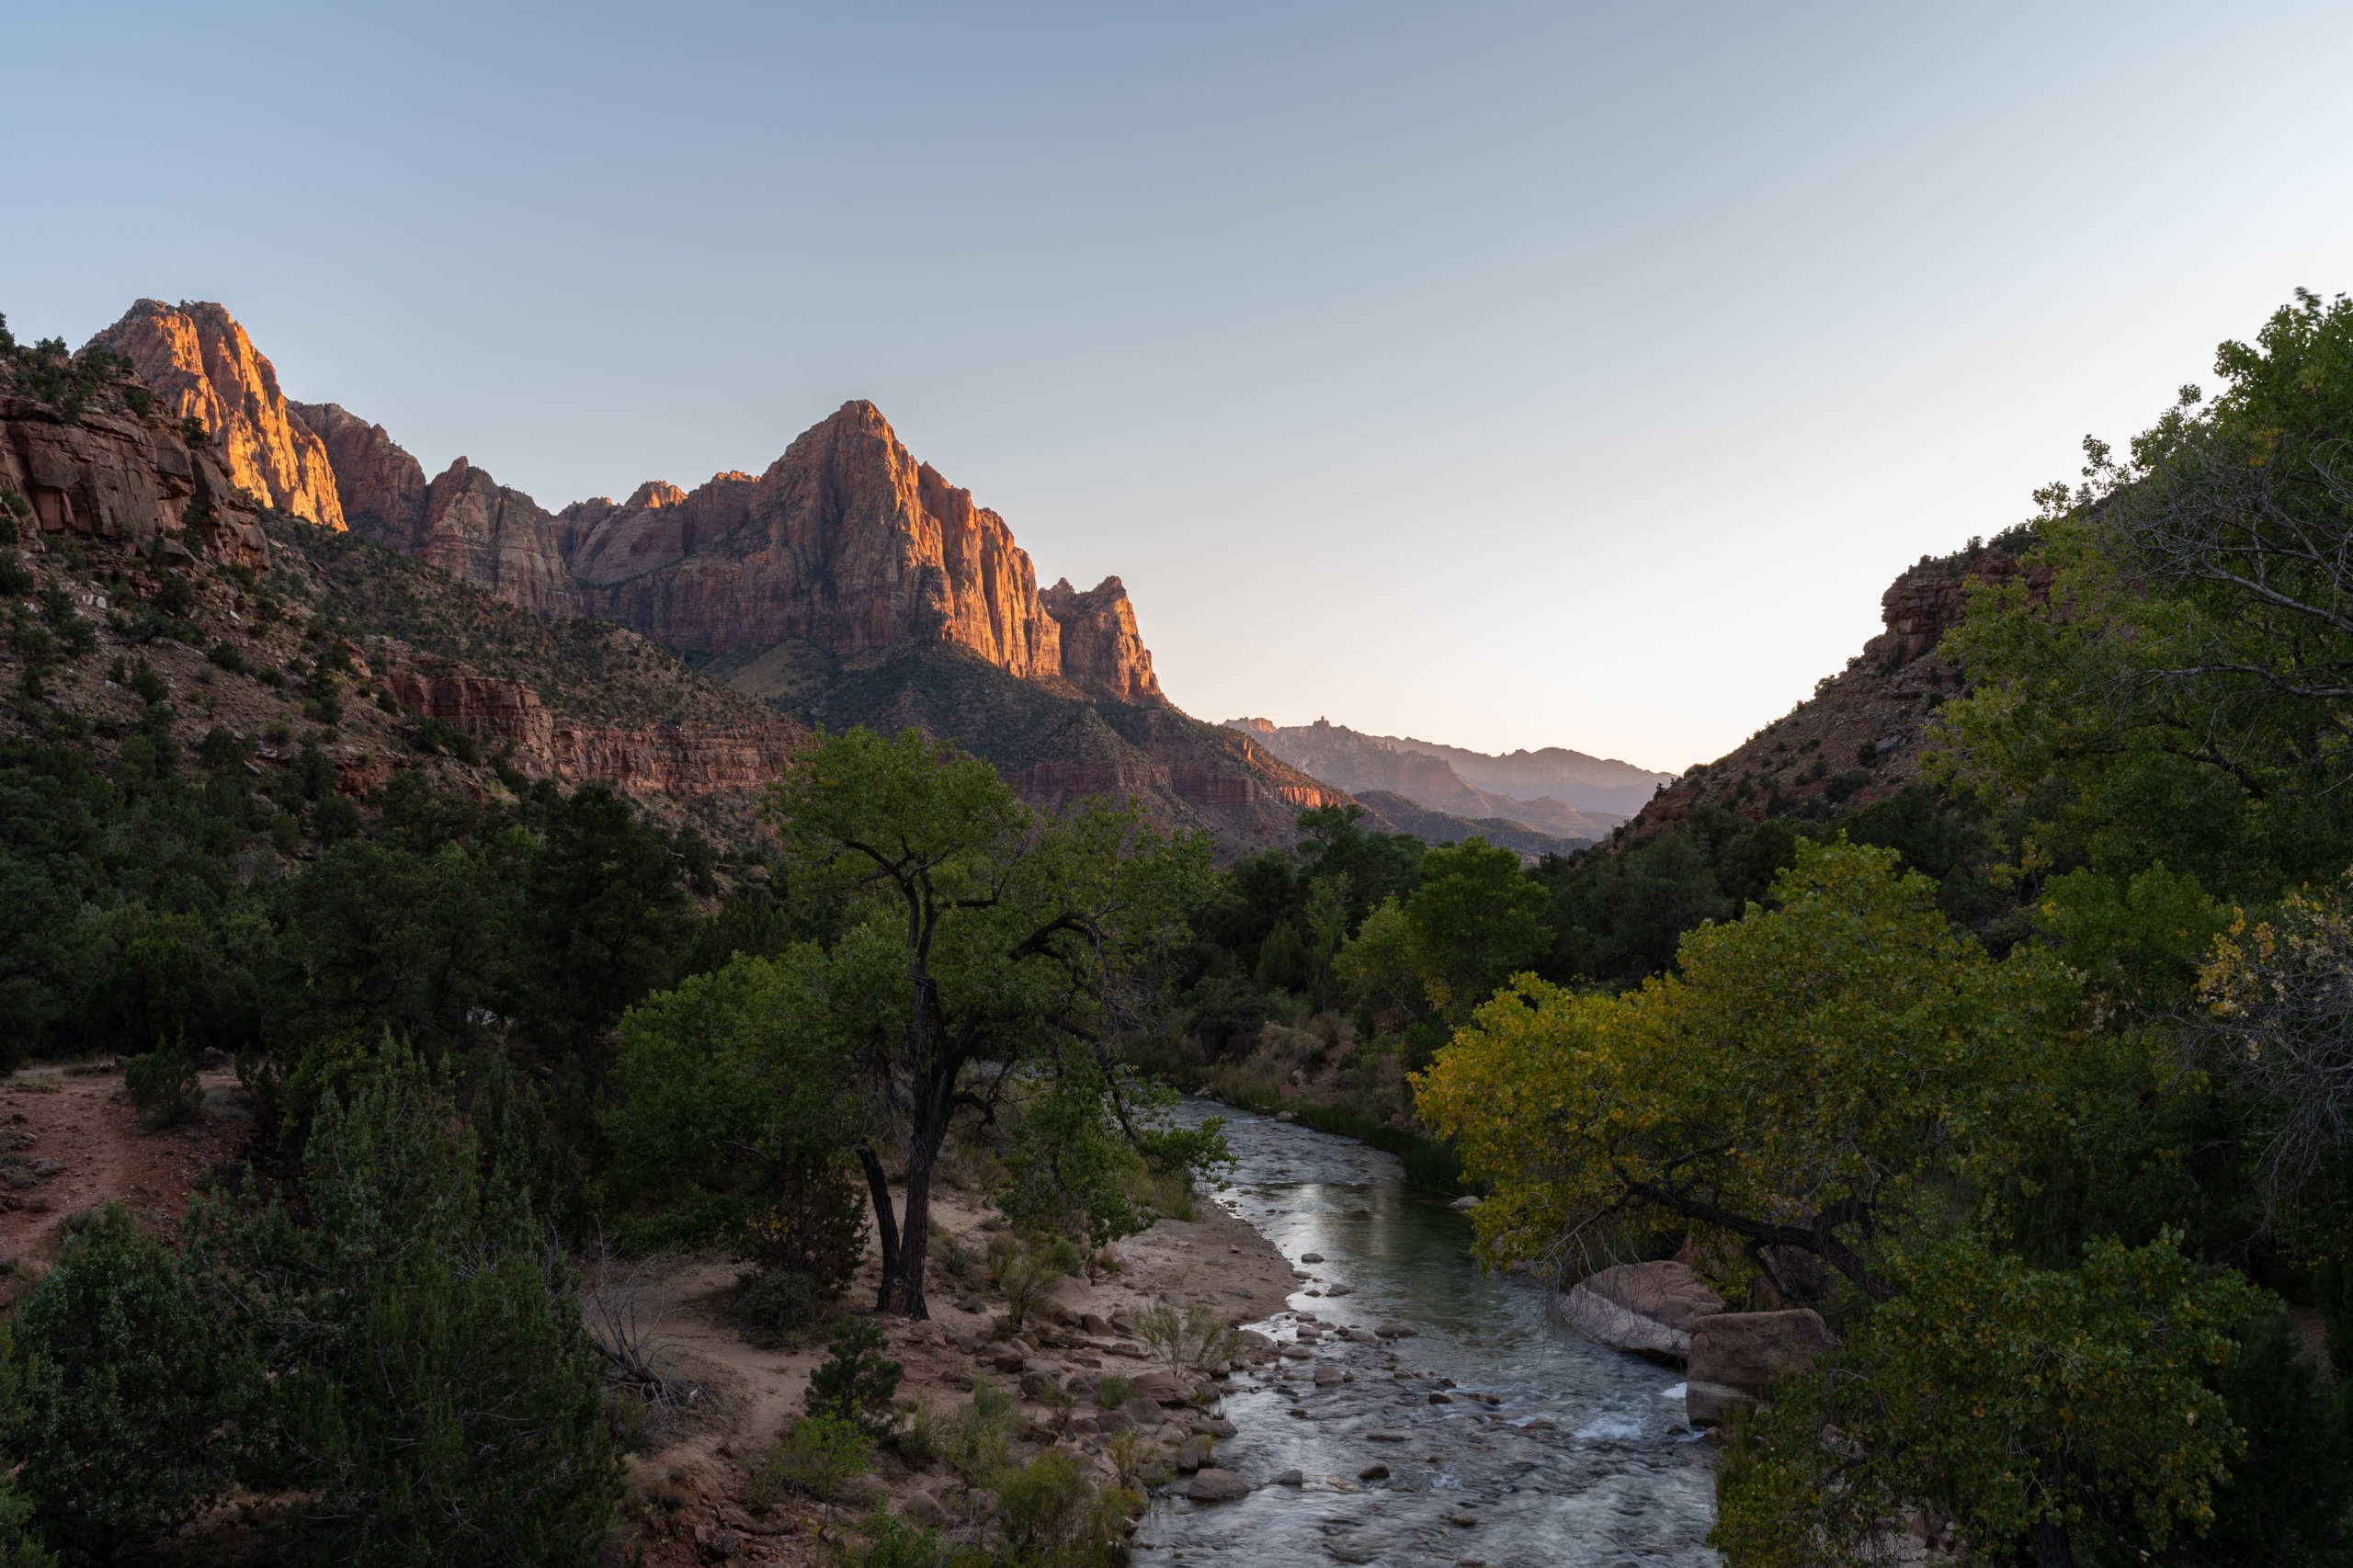 The Watchman, Zion National Park, Utah, USA